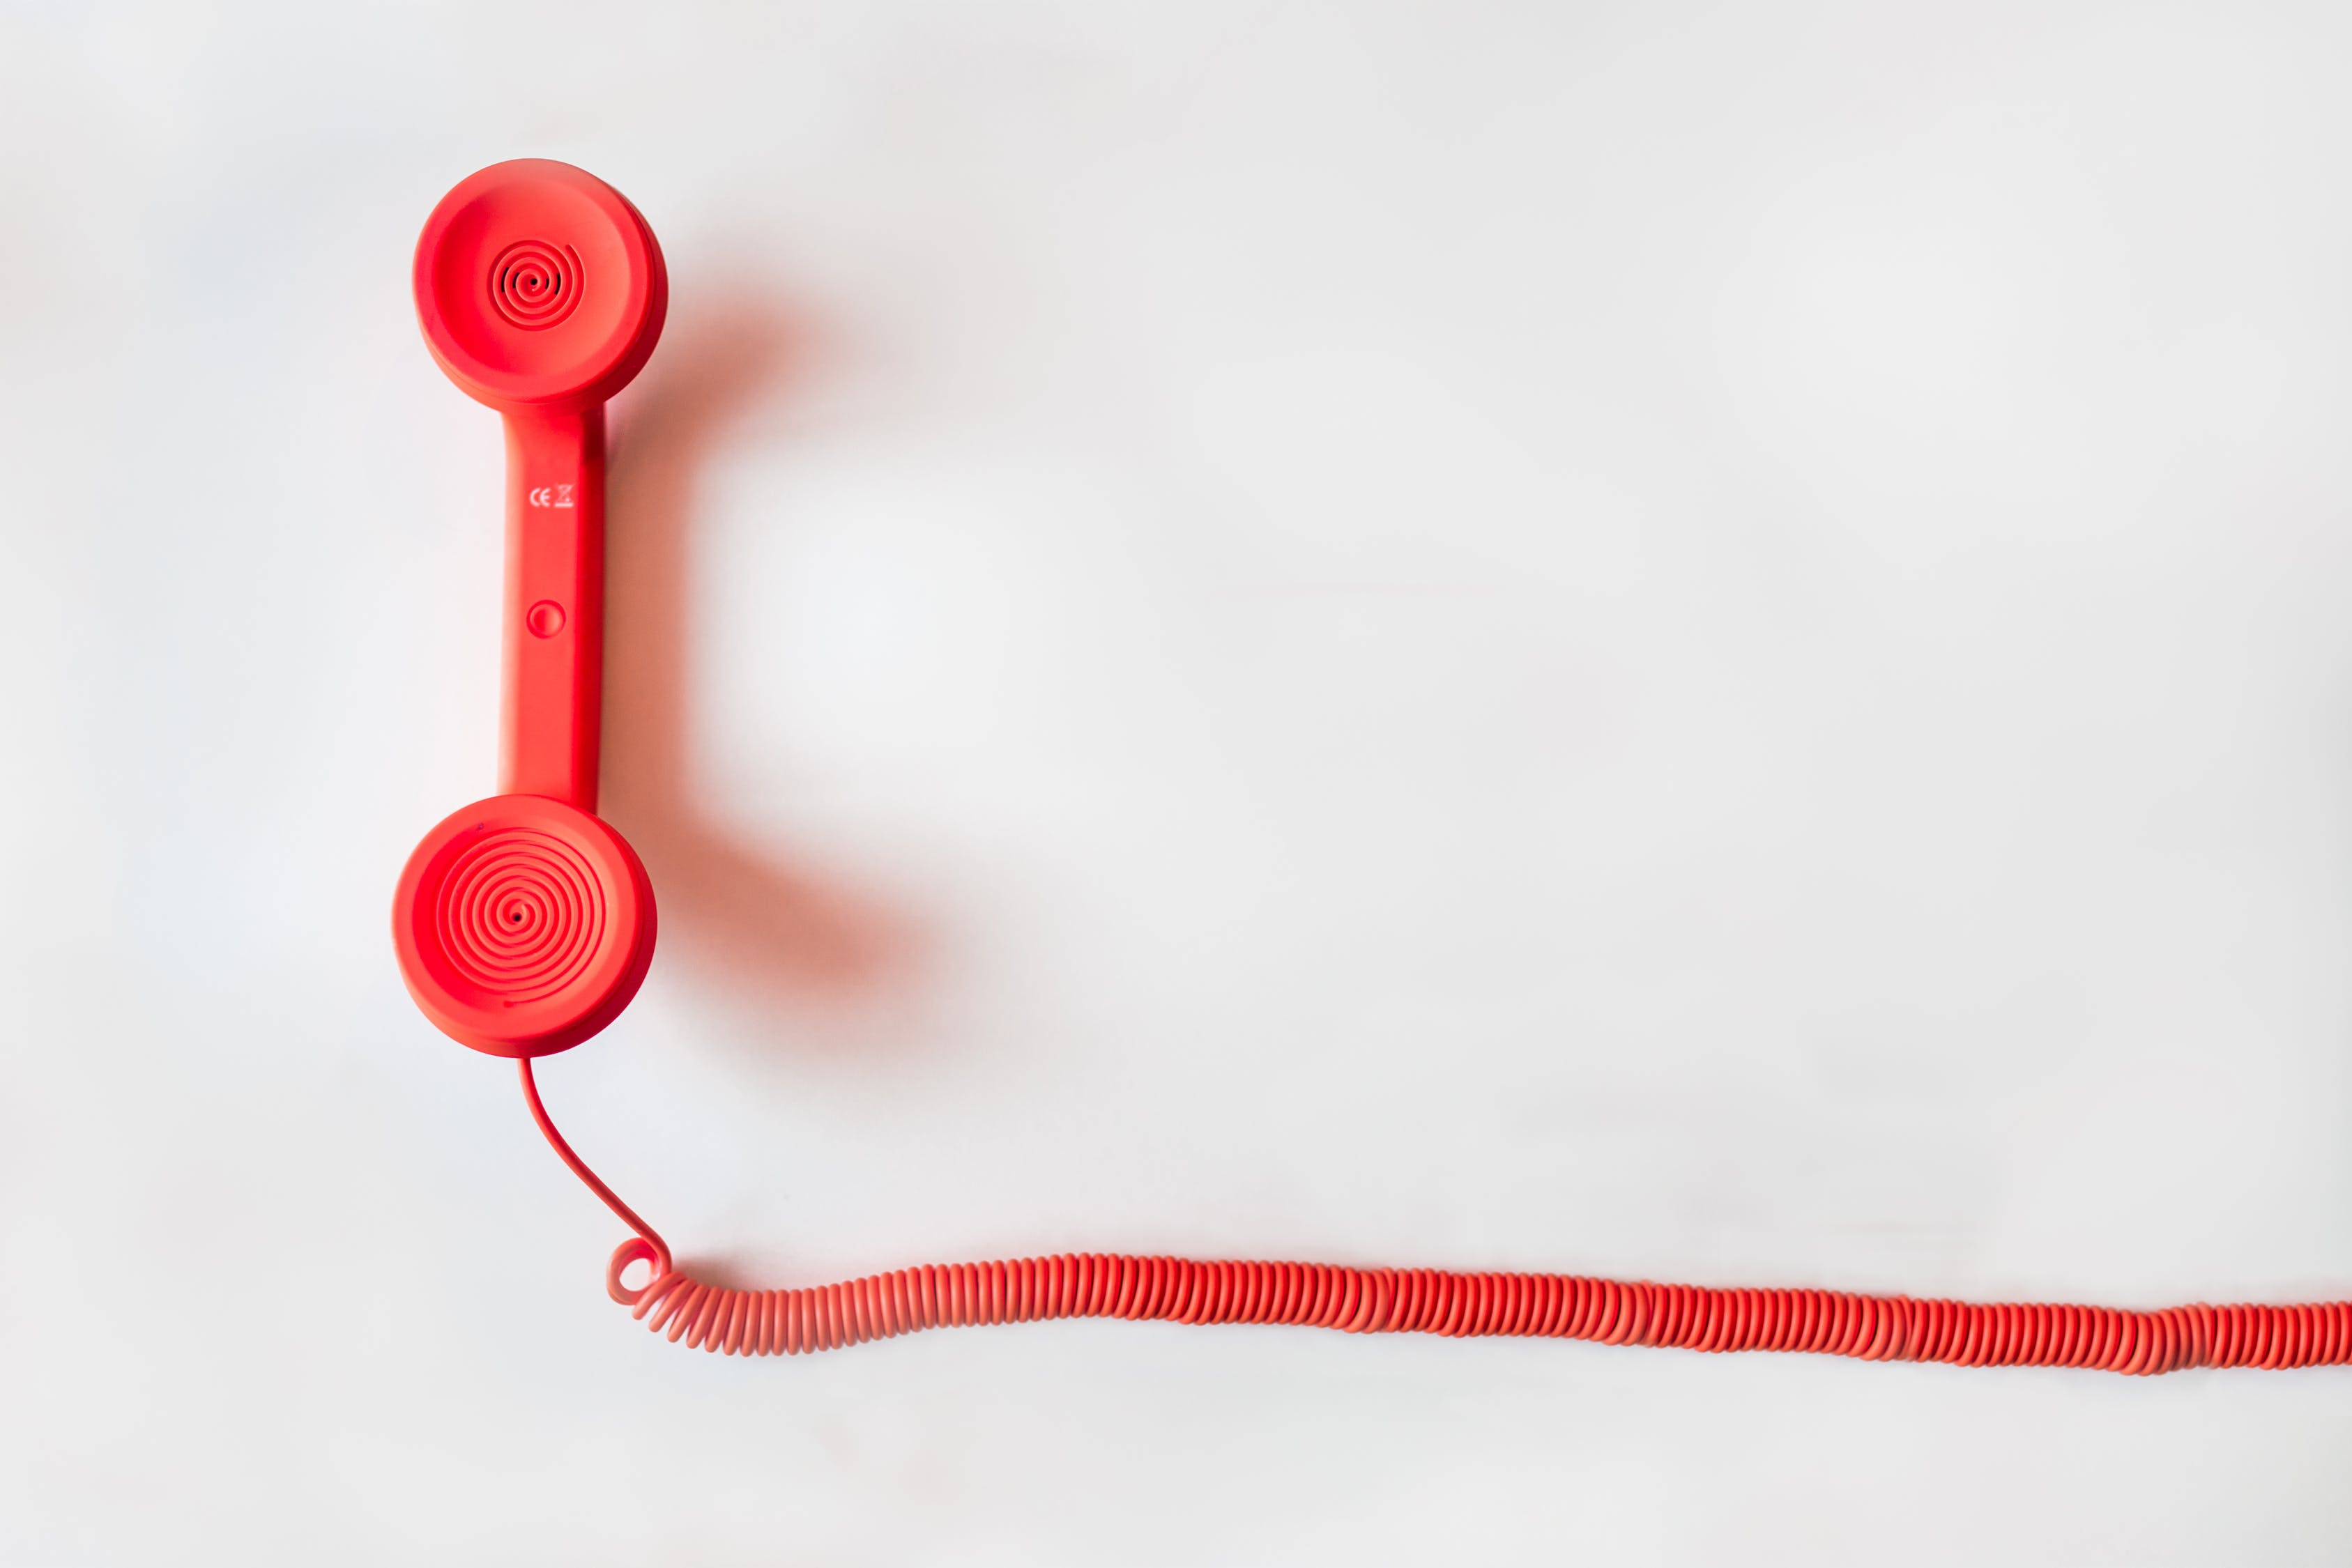 Red Corded Telephone on White Suraface